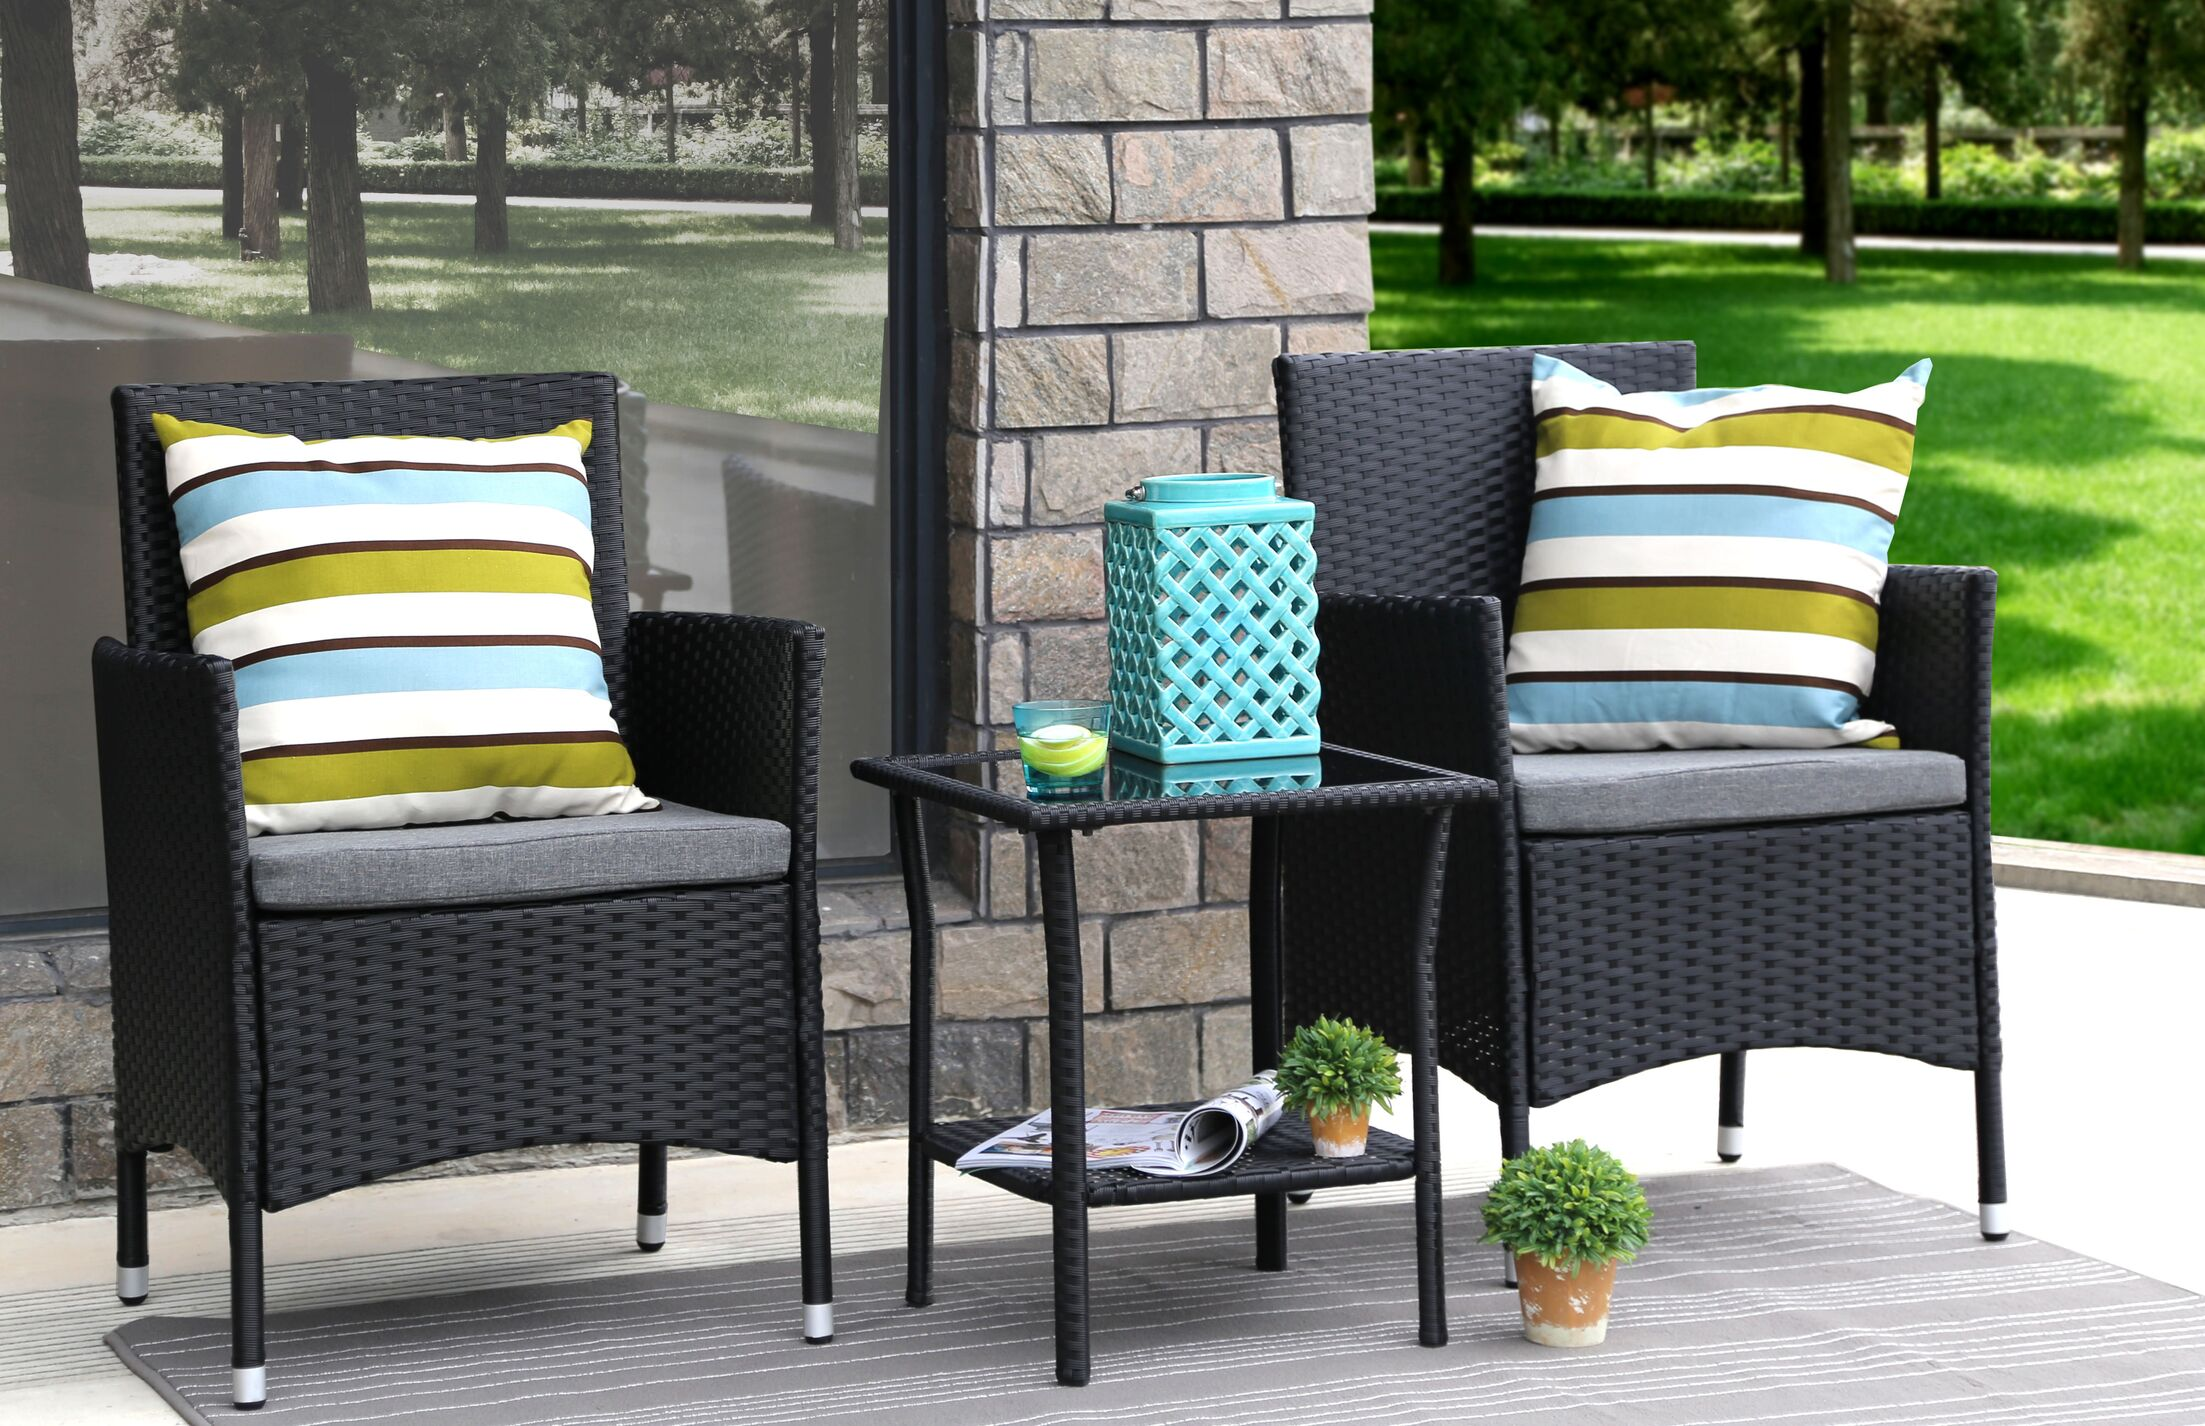 3 Piece Conservation Set with Cushions Color: Black